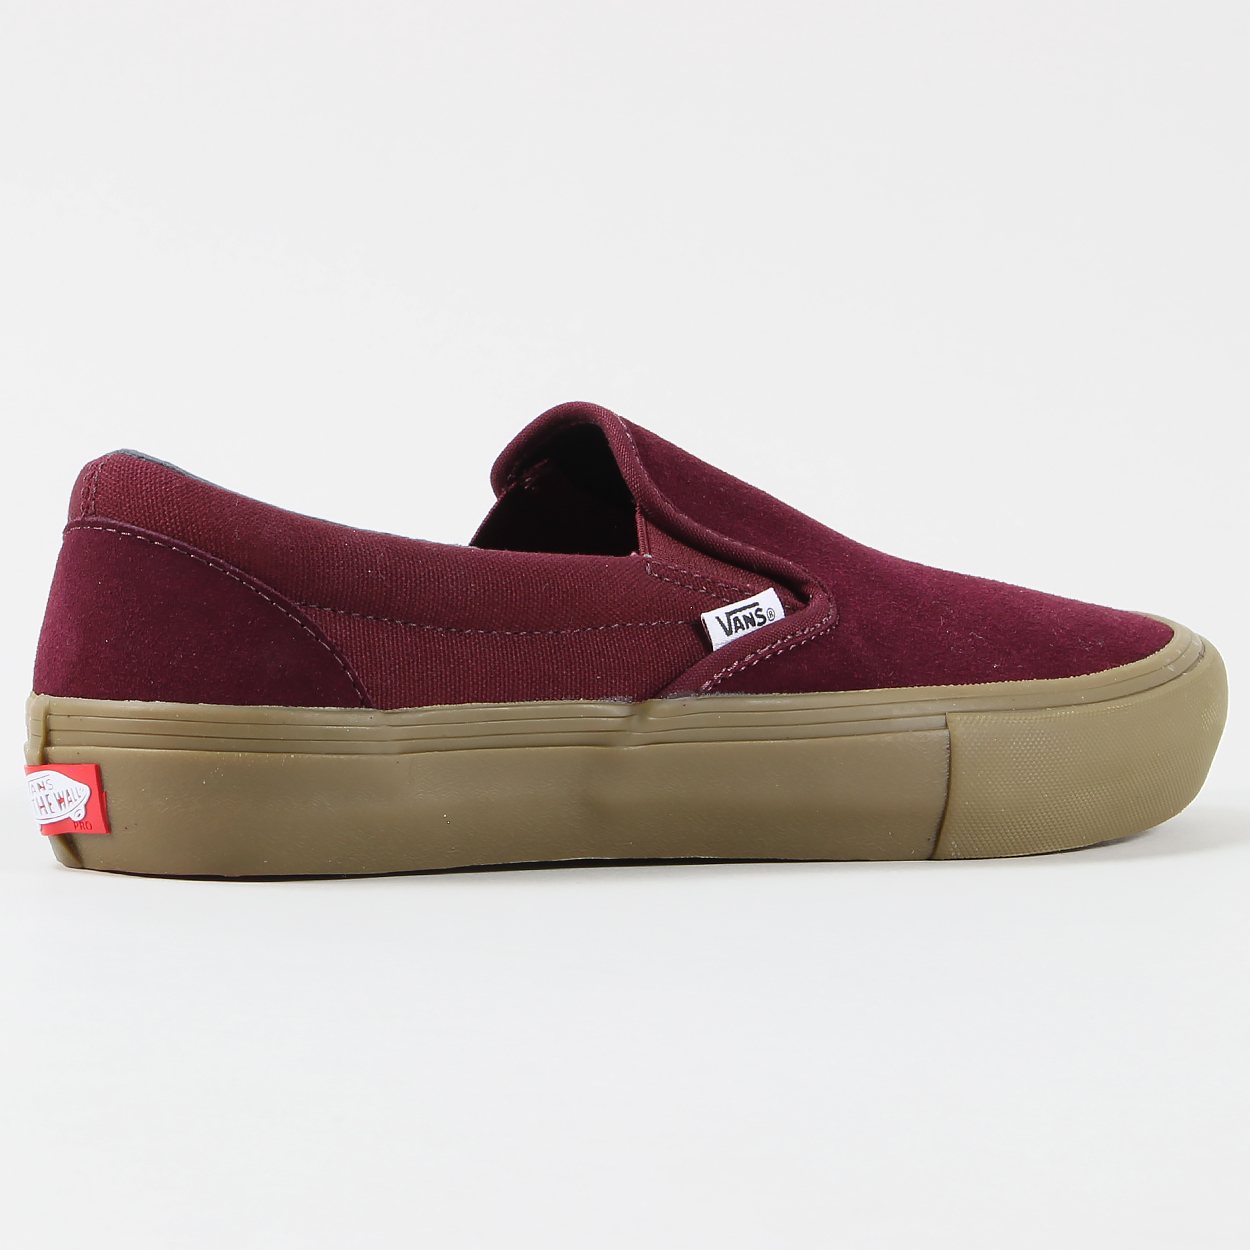 51aa4153b8 Based on the Classic Slip On with upgrades the Slip On Pro is part of the  Vans Core Skate range and only available at selected skate stores